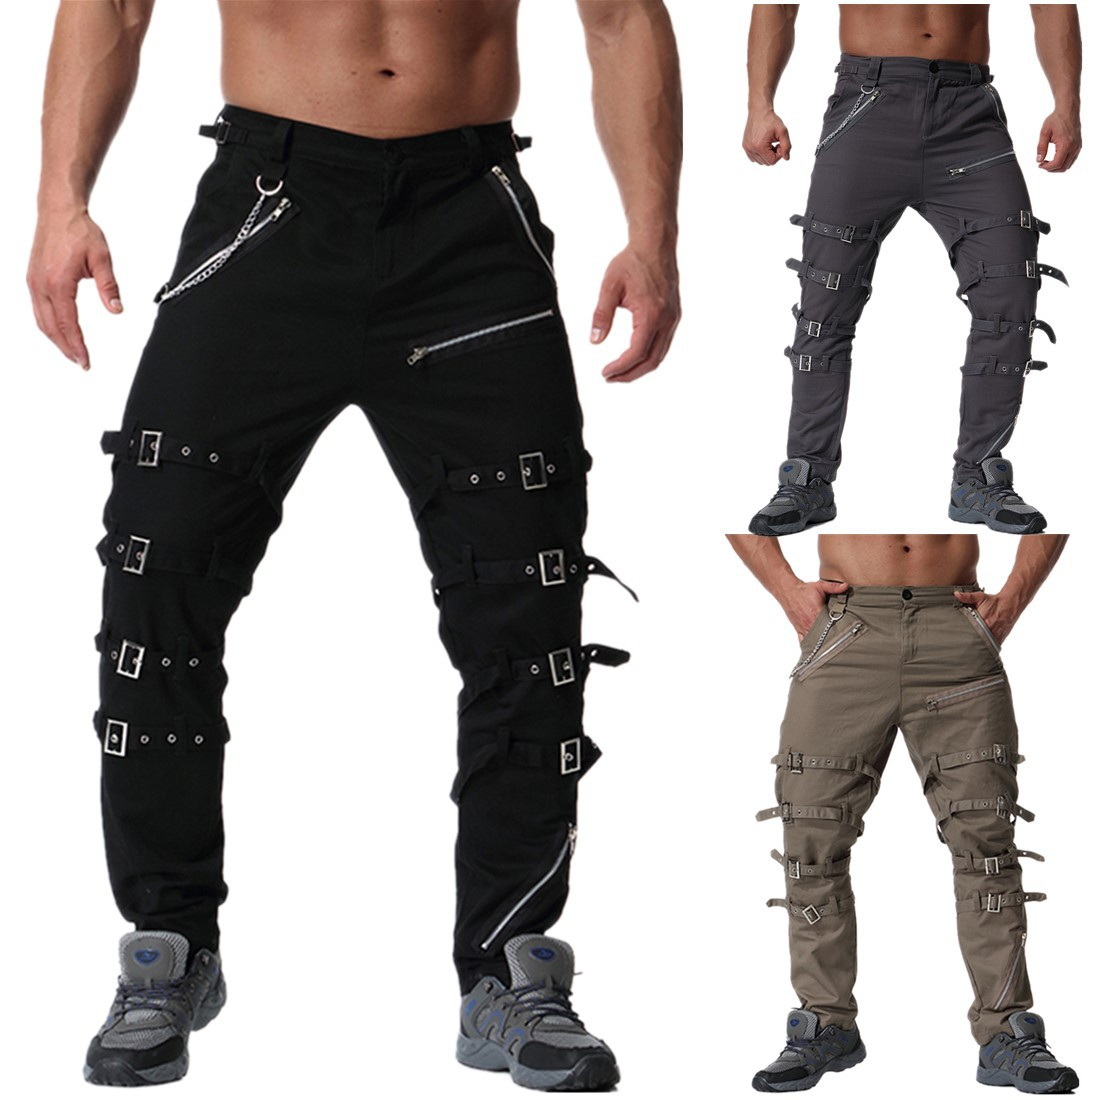 2020 Devil Fashion Punk Men's Detachable Pants Steampunk Gothic Black Scotland Kilt Trousers Man Casual Cotton Pants With Kilt